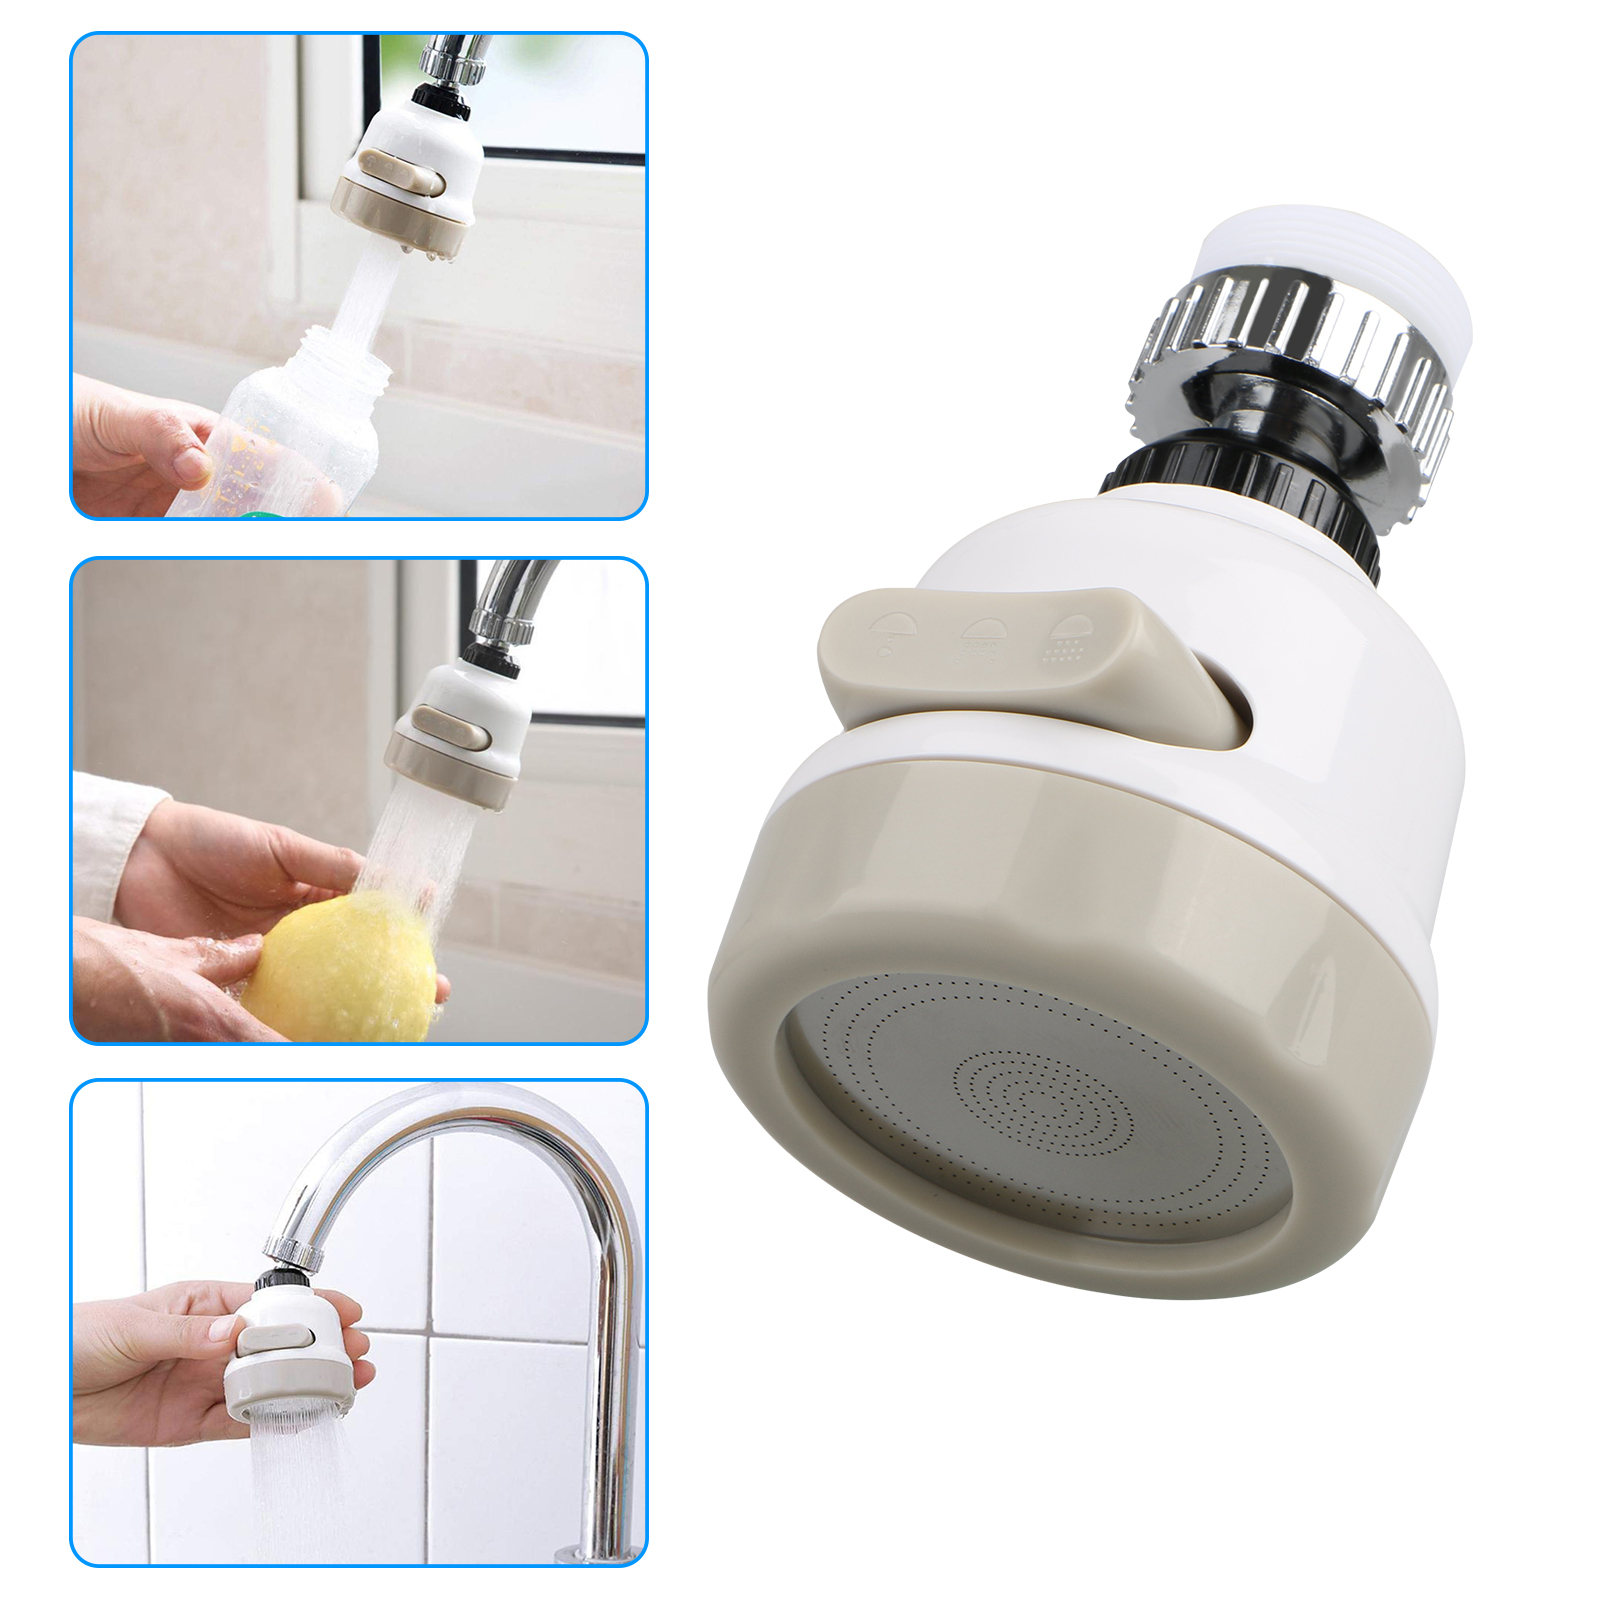 Kitchen-Sink-Faucet-Spray-Head-360-Swivel-Pull-Out-Spray-Head-Replacement-Part thumbnail 11